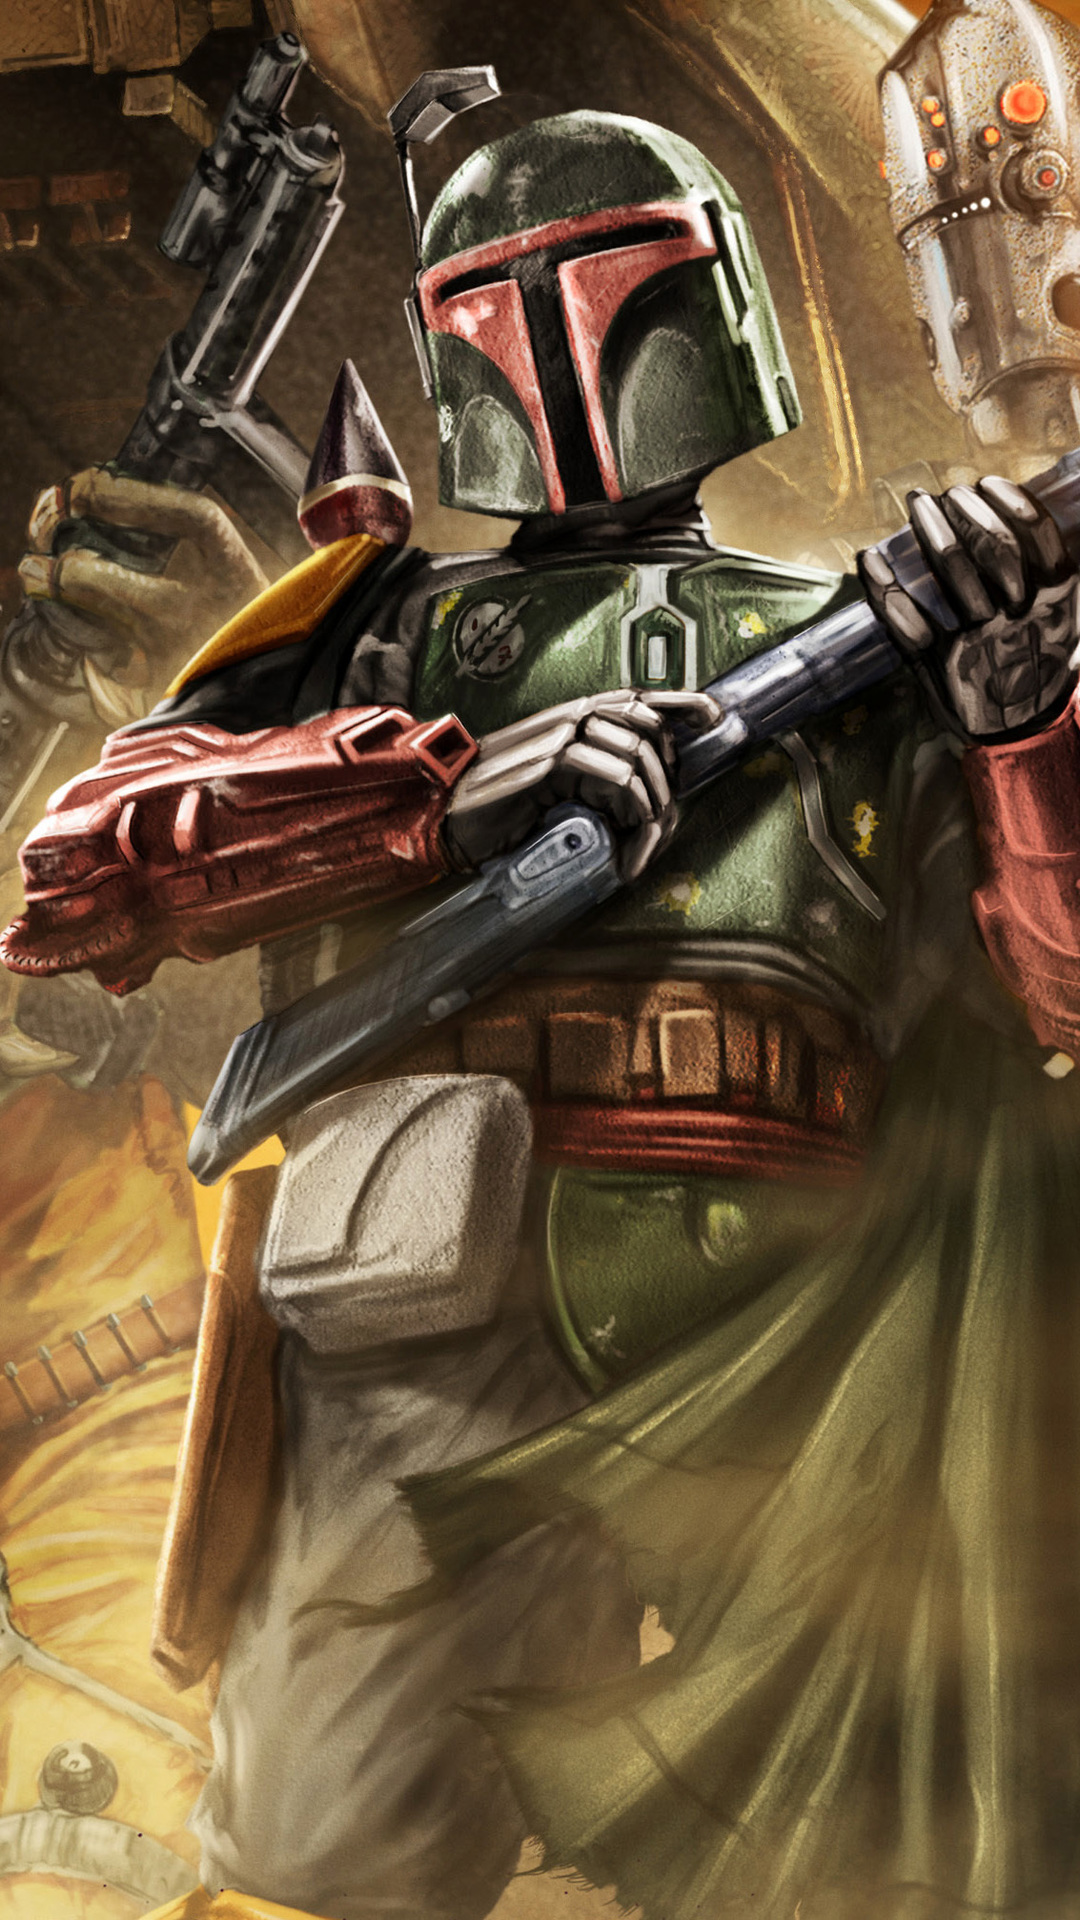 Star Wars Bounty Hunter Game Photo 1080x1920 Download Hd Wallpaper Wallpapertip